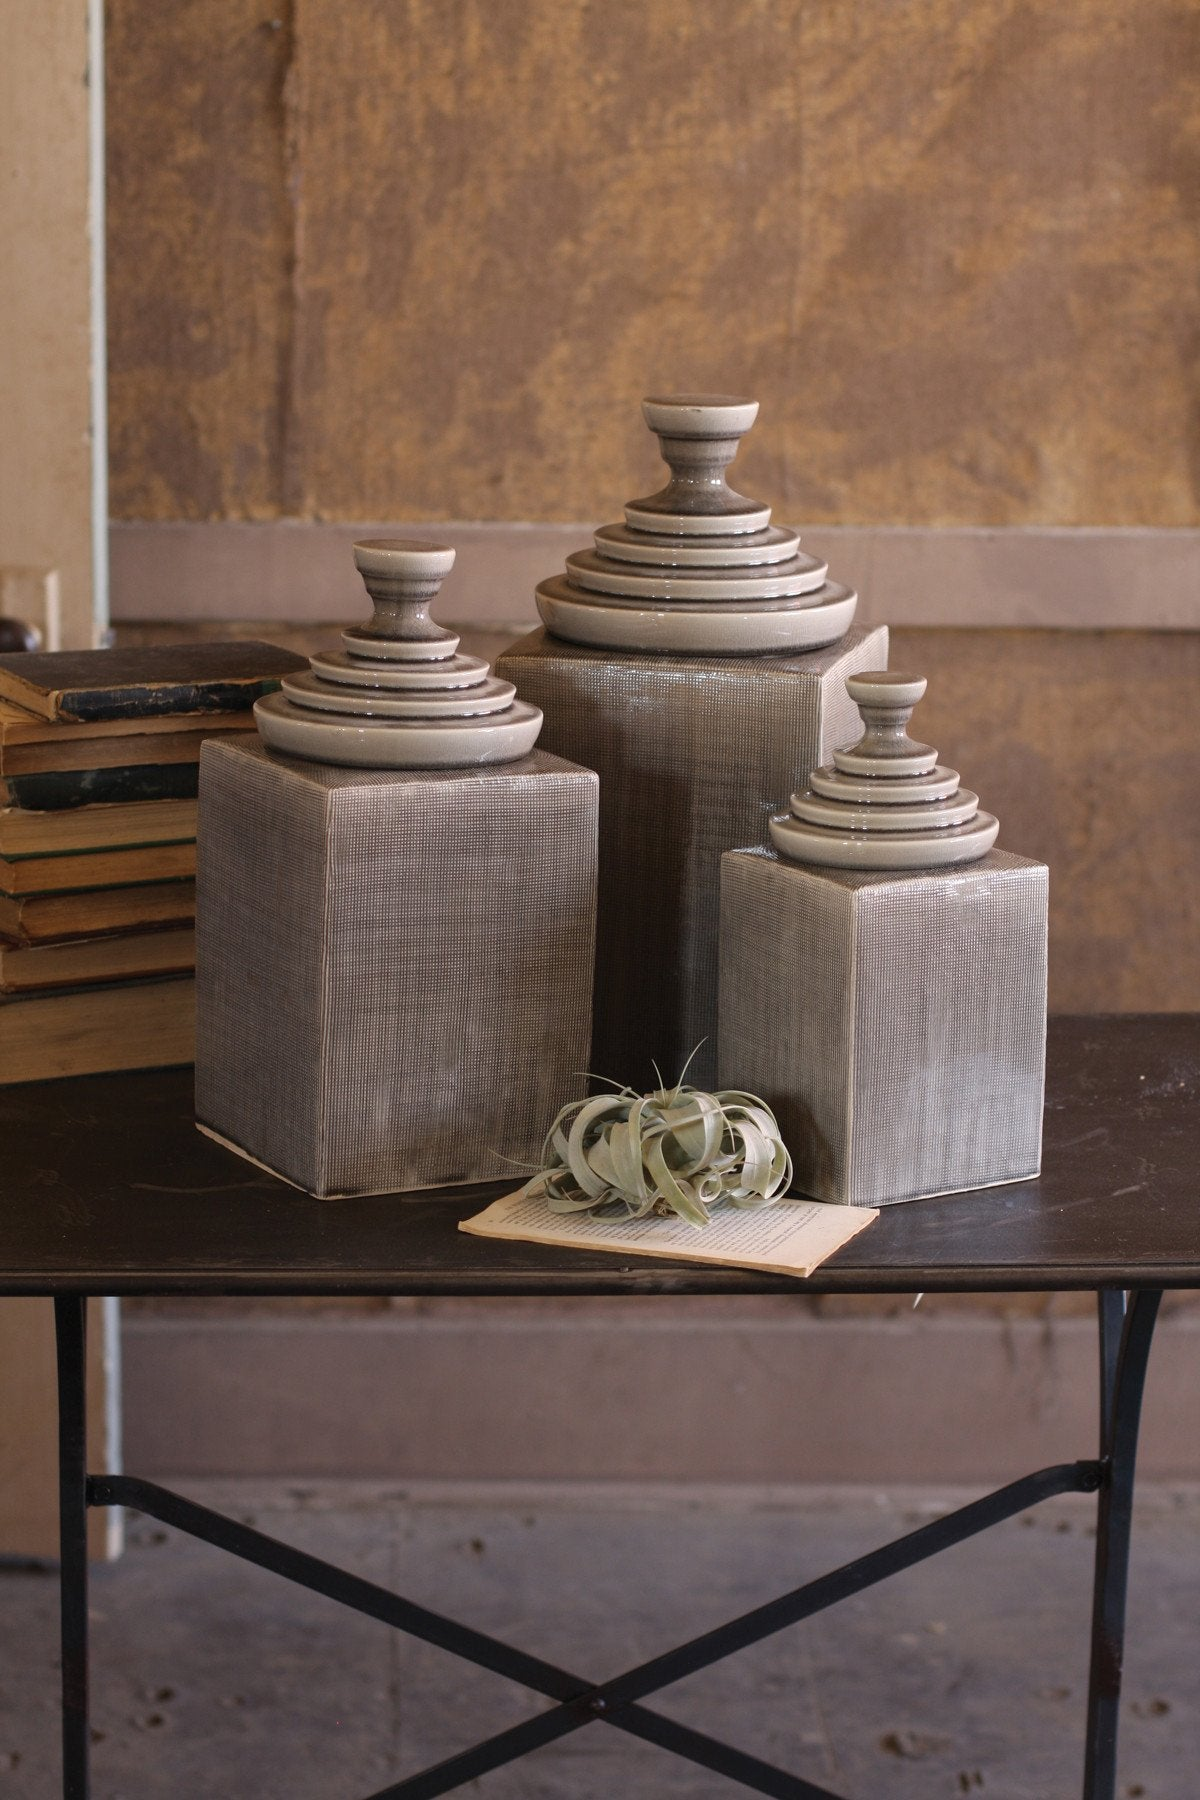 Kalalou Textured Ceramic Canisters With Pyramid Tops - Grey - Set Of 3